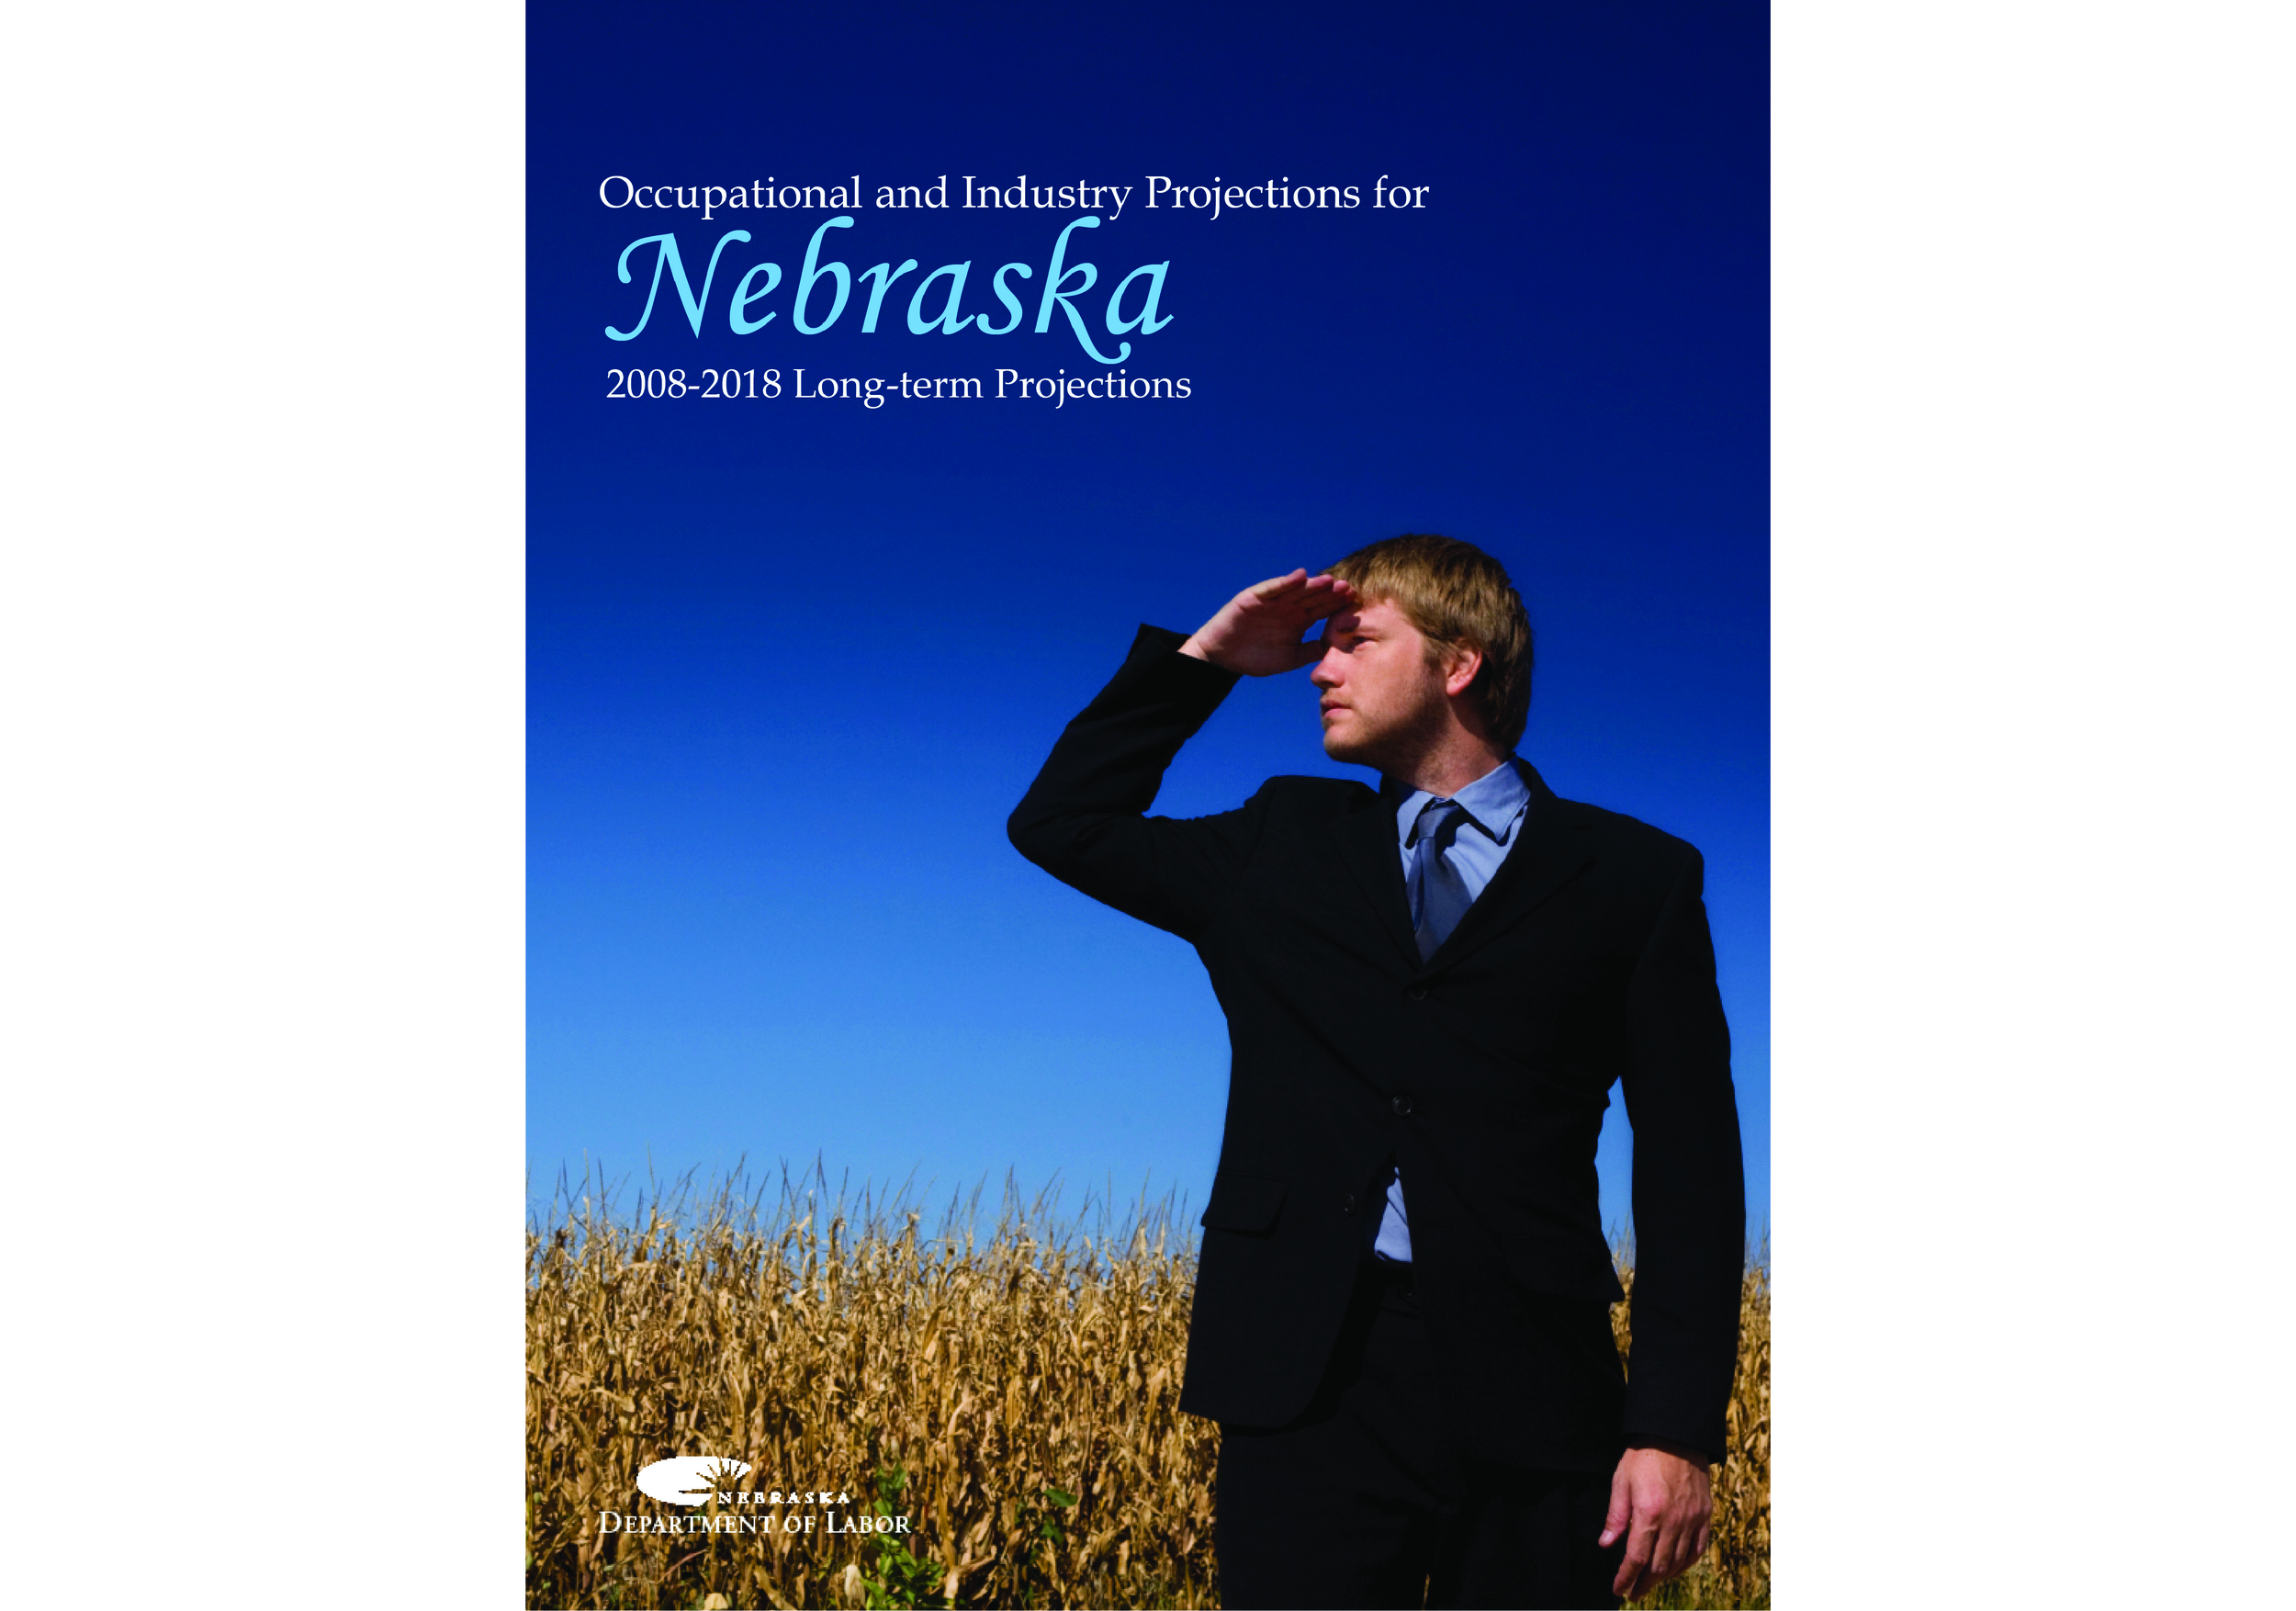 Nebraska Occupational and Industry Projections